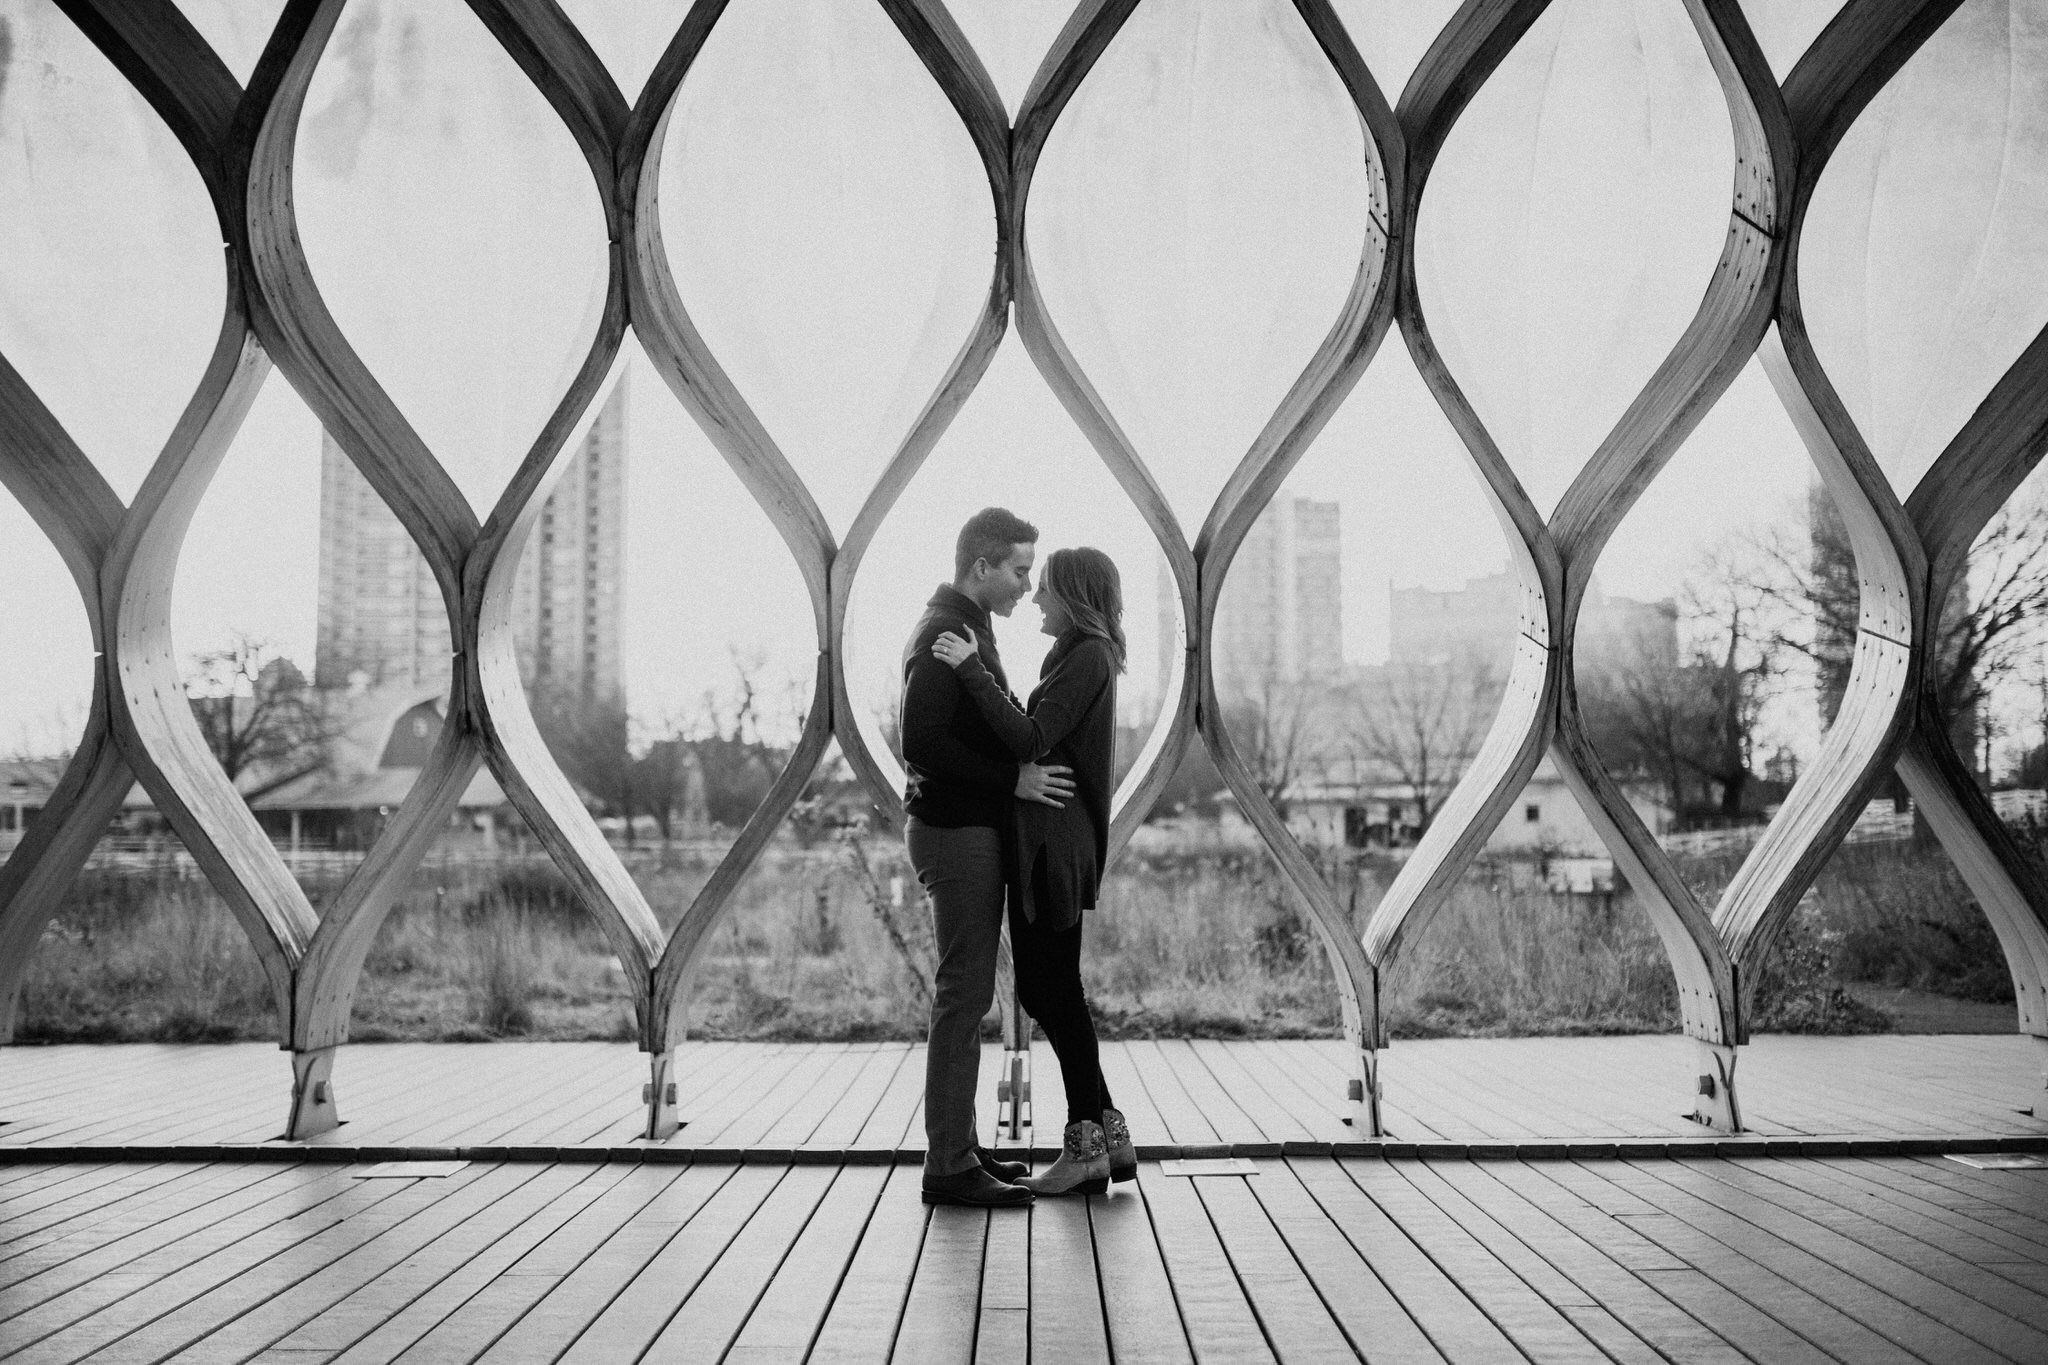 014-rempel-photography-chicago-wedding-photography-christina-paul-lincoln-park-engagement-session-second-city-bar.jpg